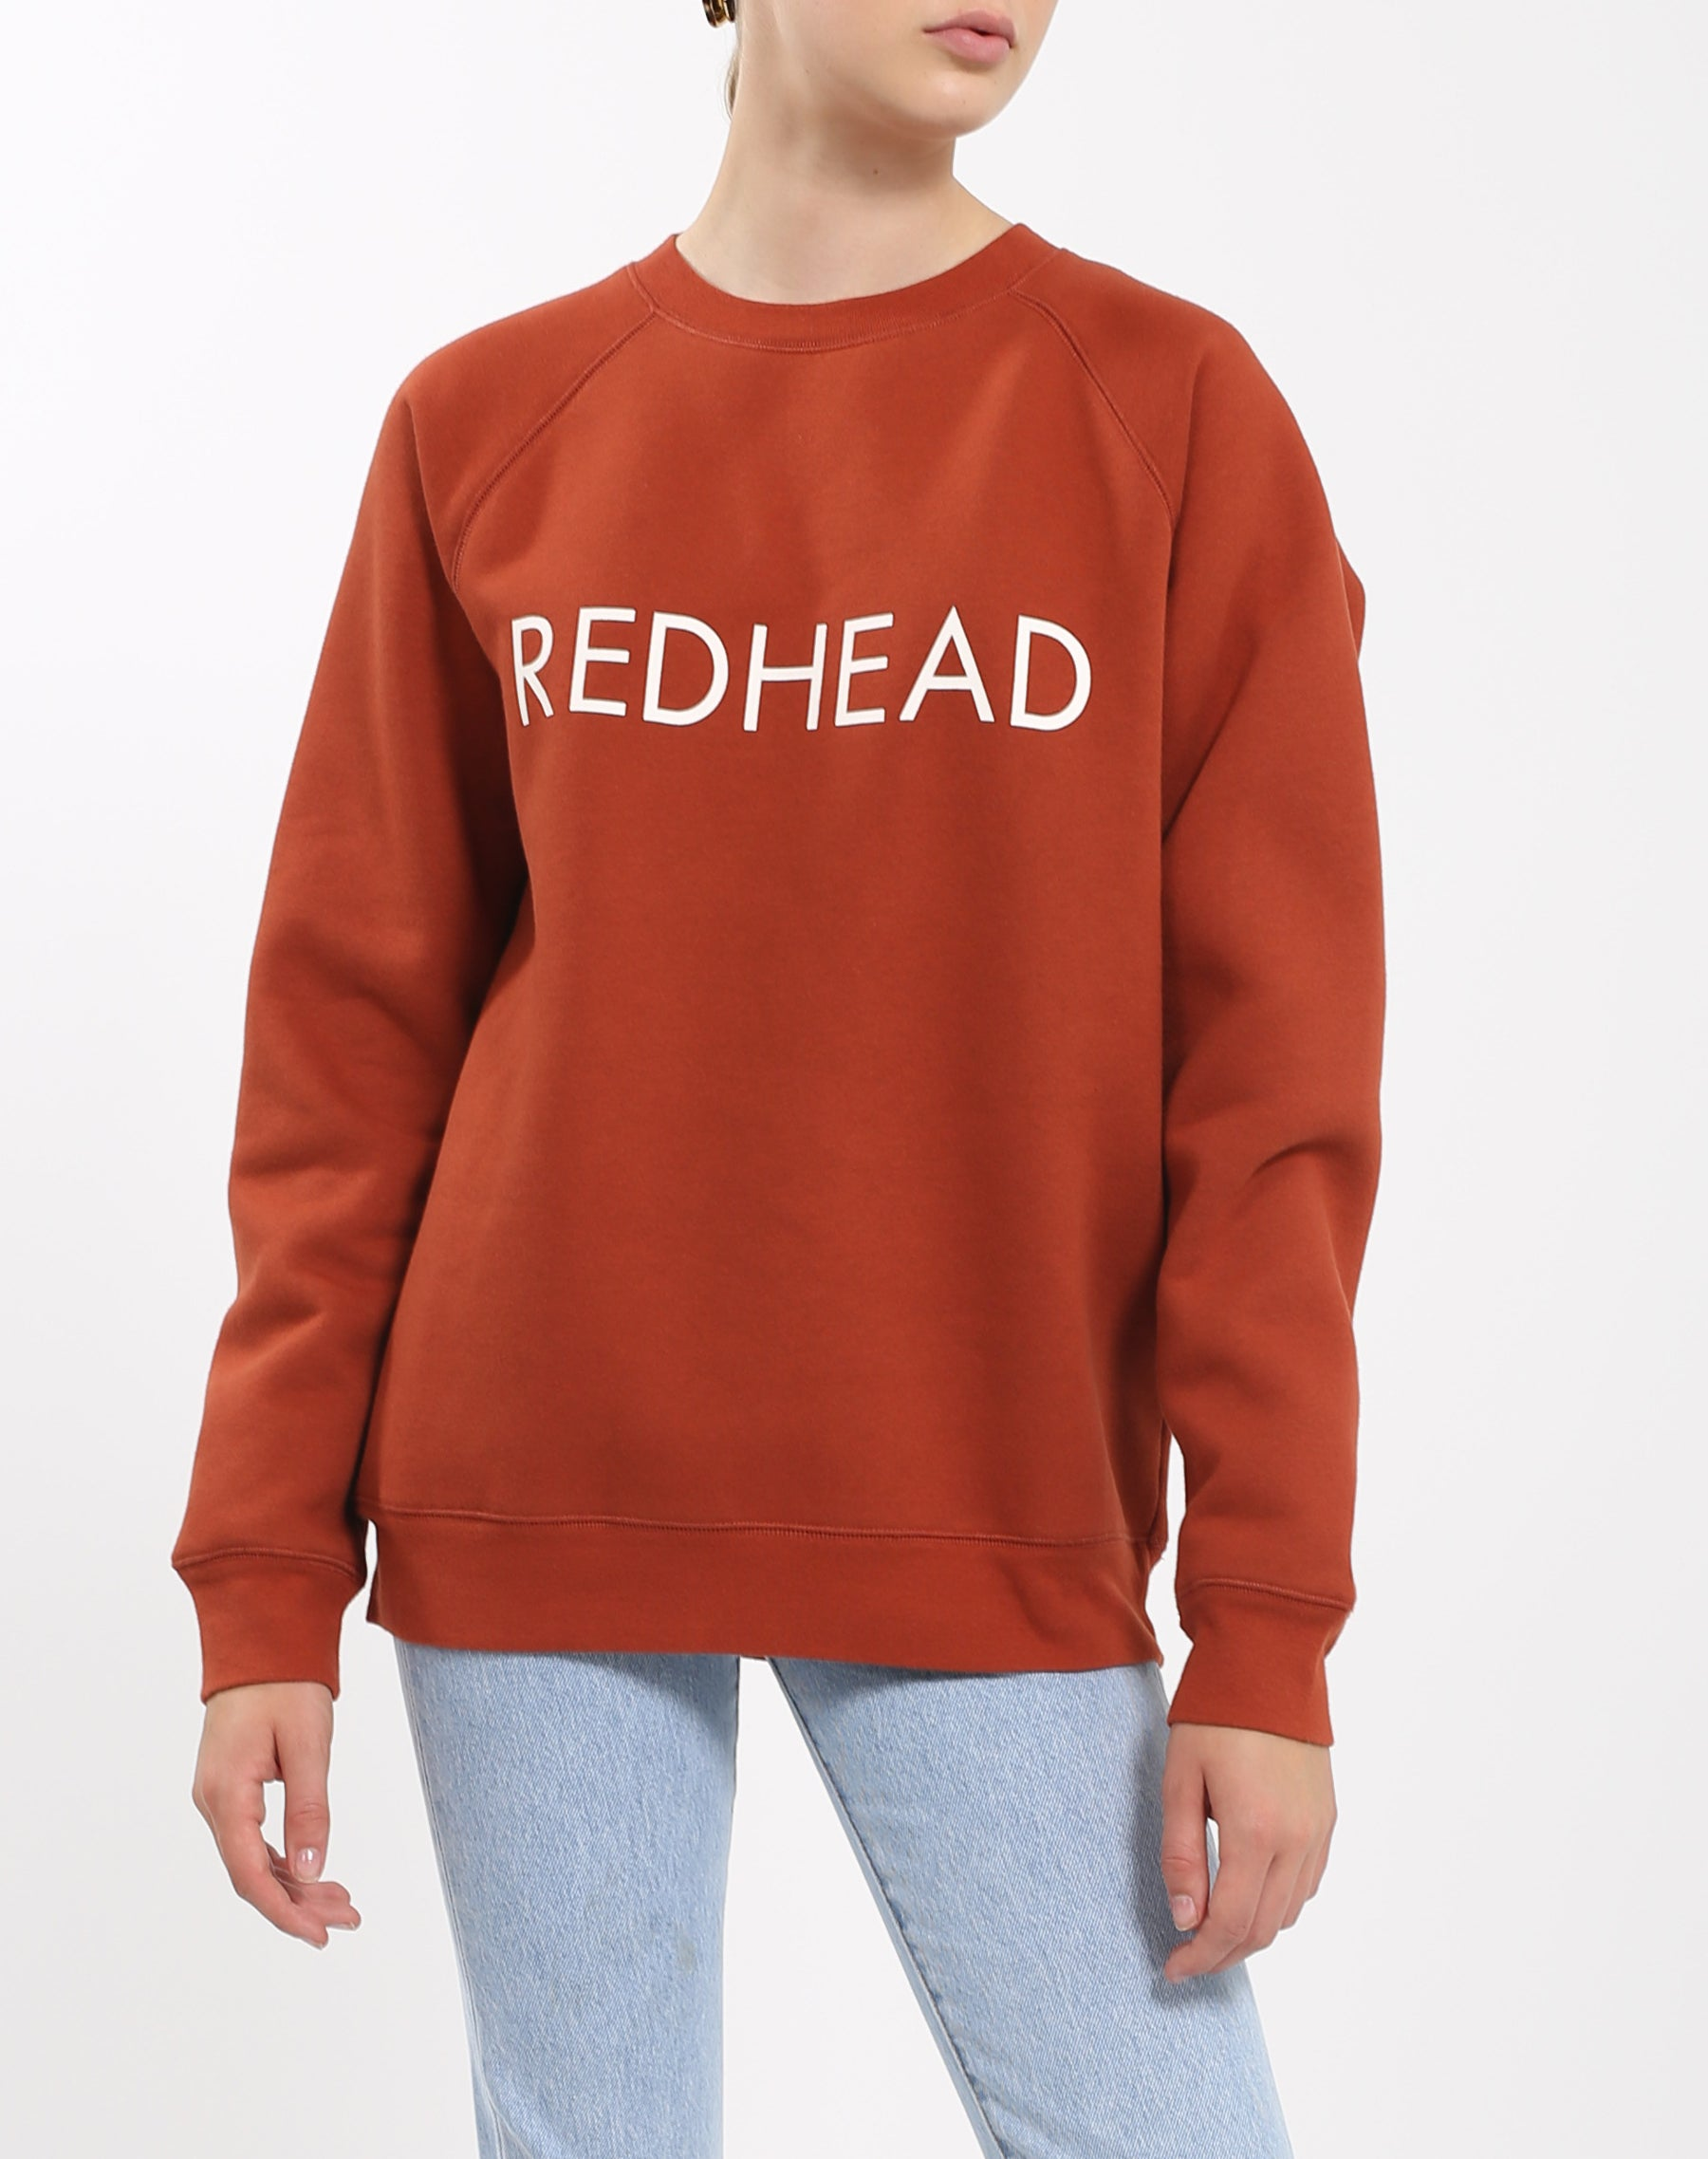 Photo of the Red Head classic crew neck sweatshirt in rust by Brunette the Label.